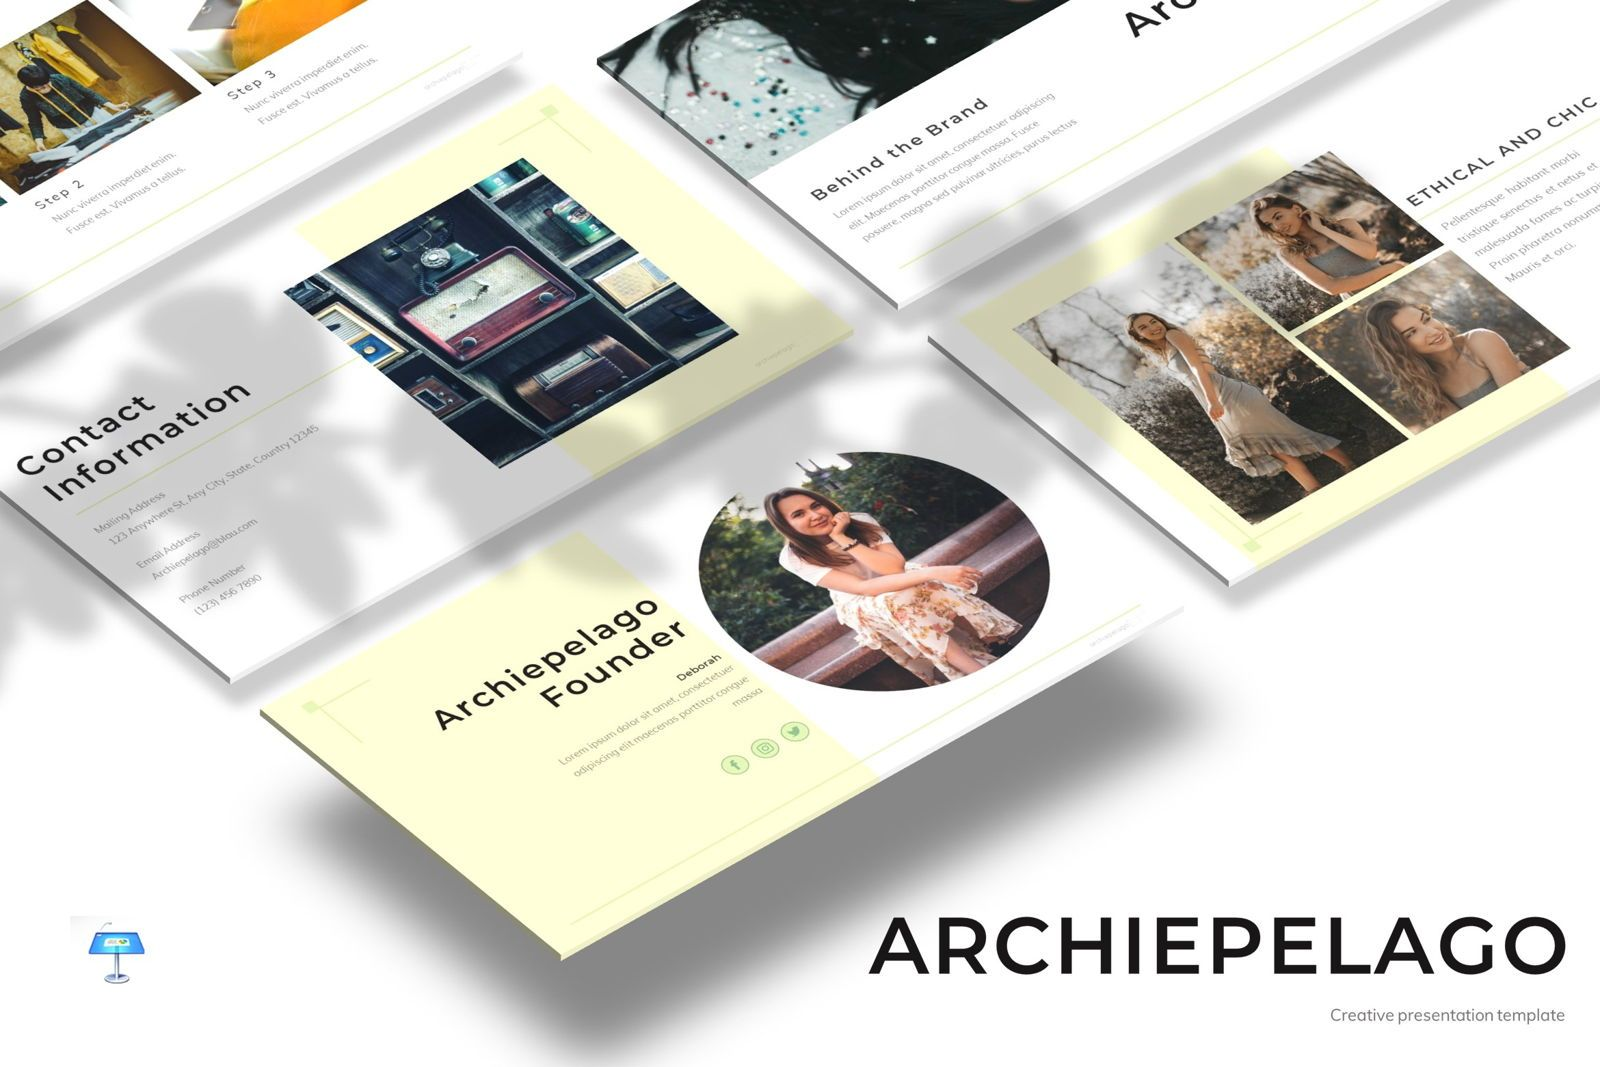 Archiepelago - Keynote Template, 07705, Presentation Templates — PoweredTemplate.com